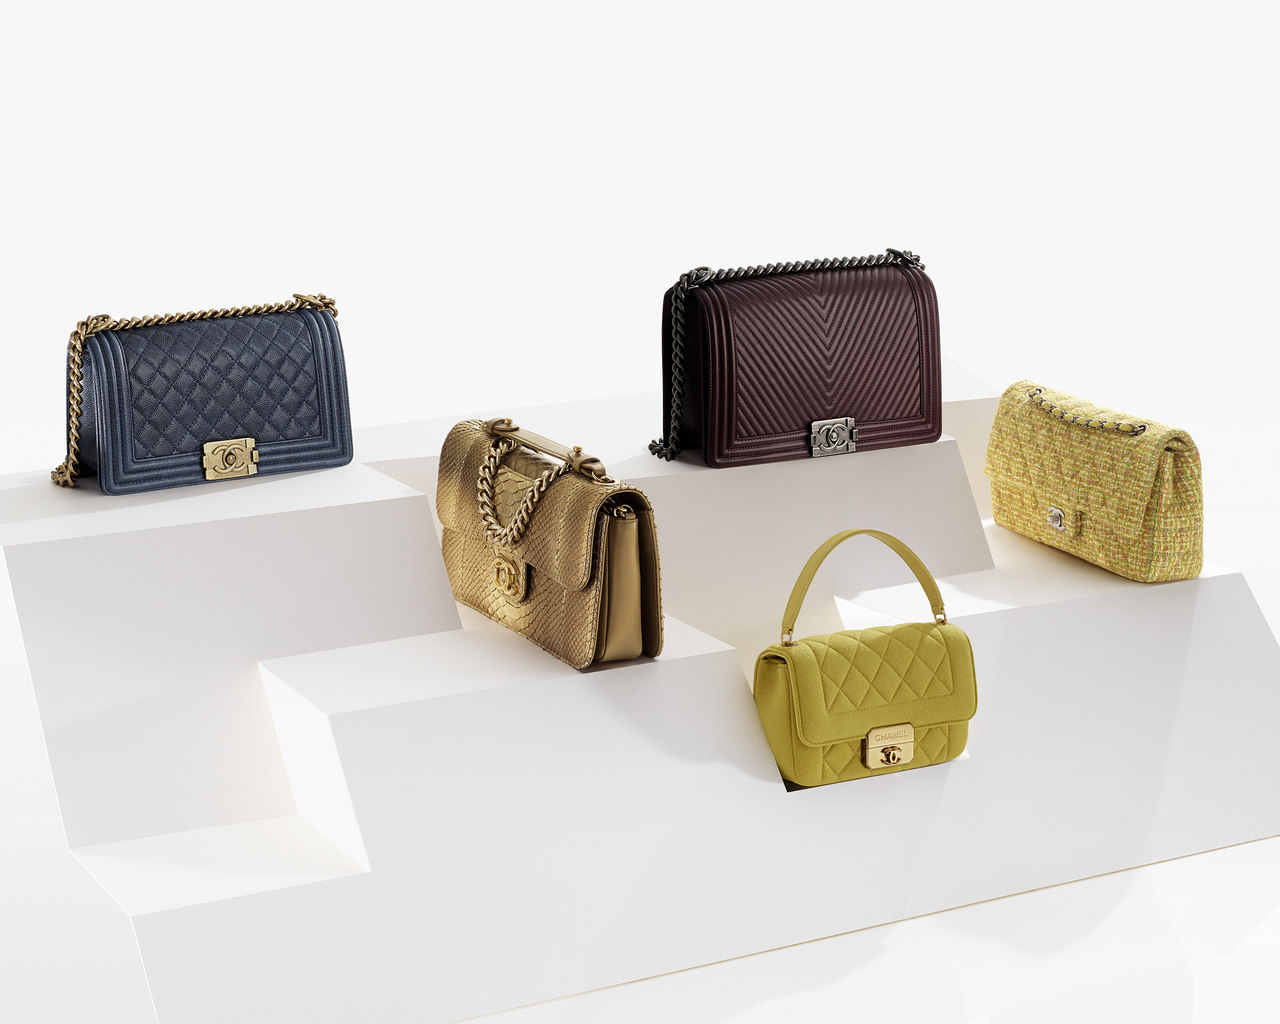 CHANEL Fashion - Handbags